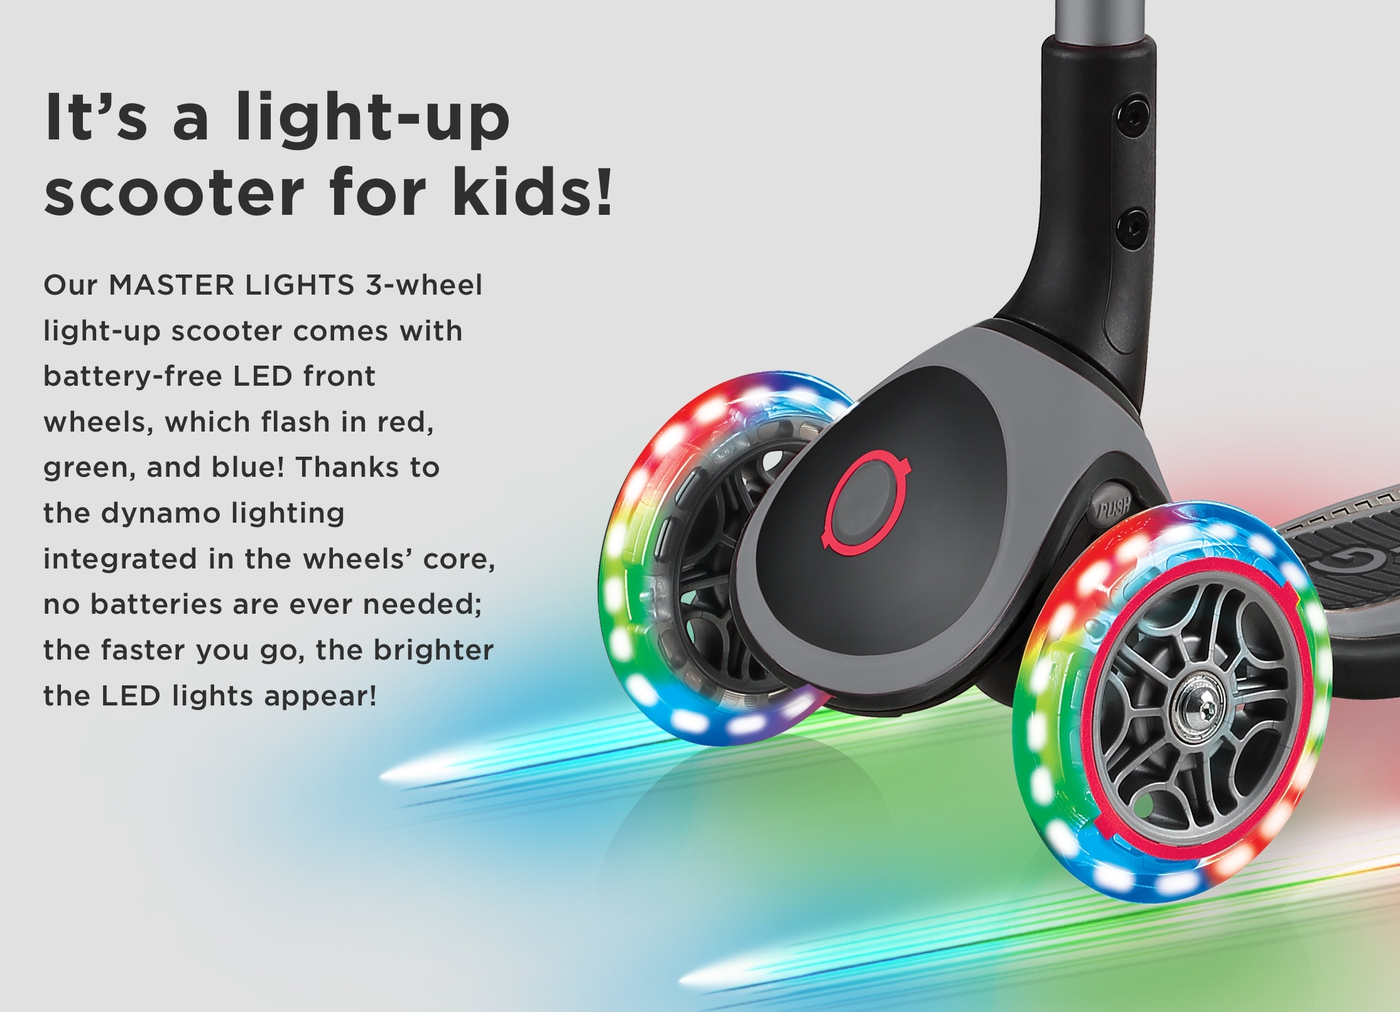 It's a light-up scooter for kids!